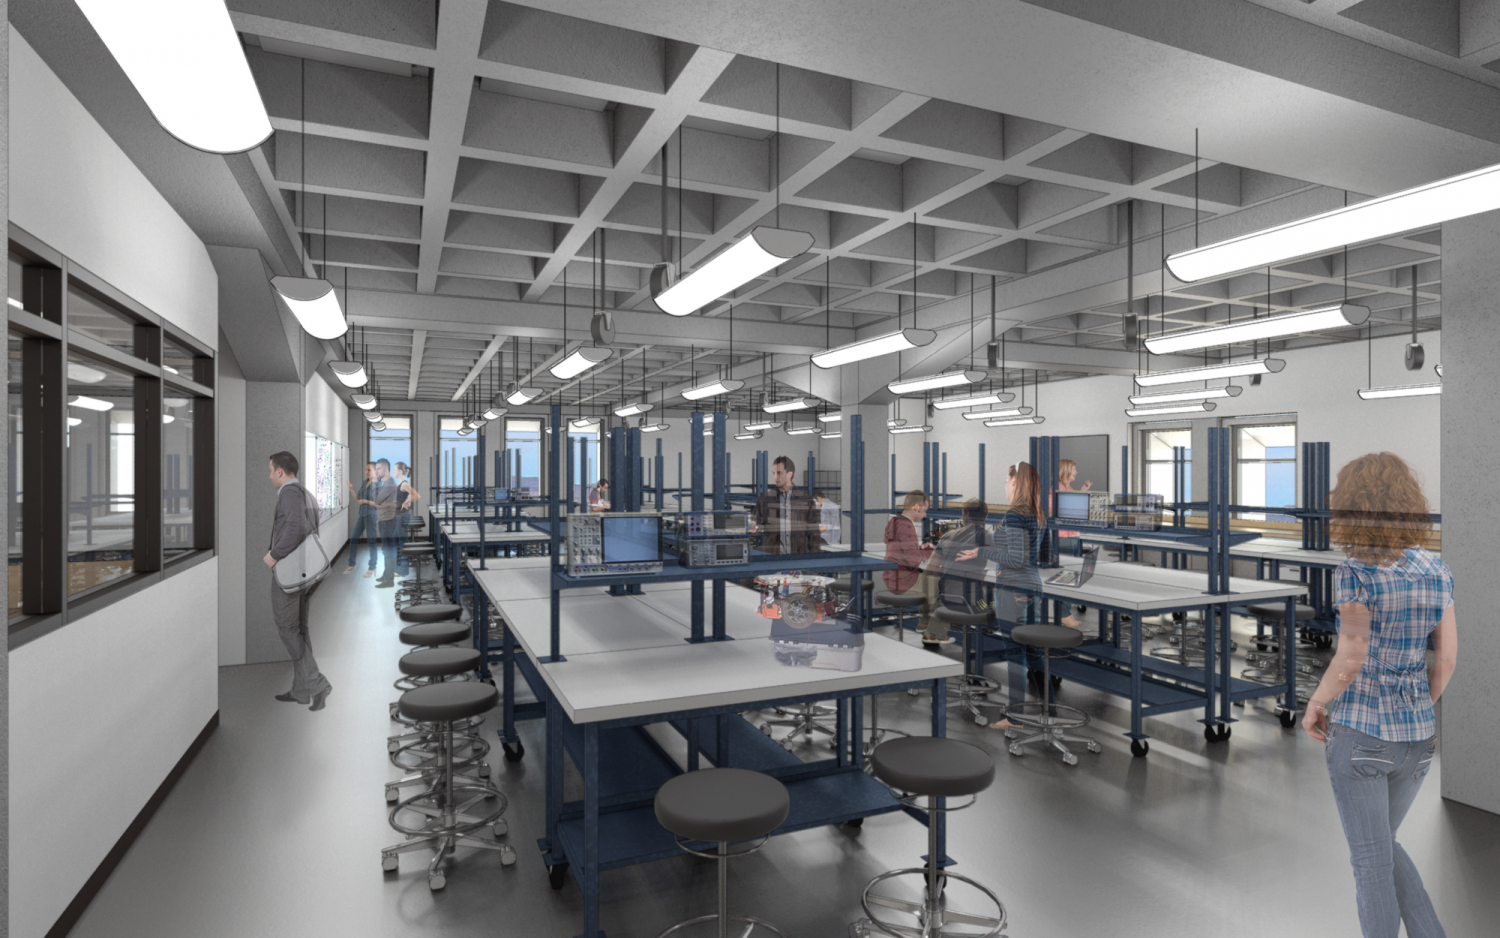 A rendering showing the fully renovated circuits lab.